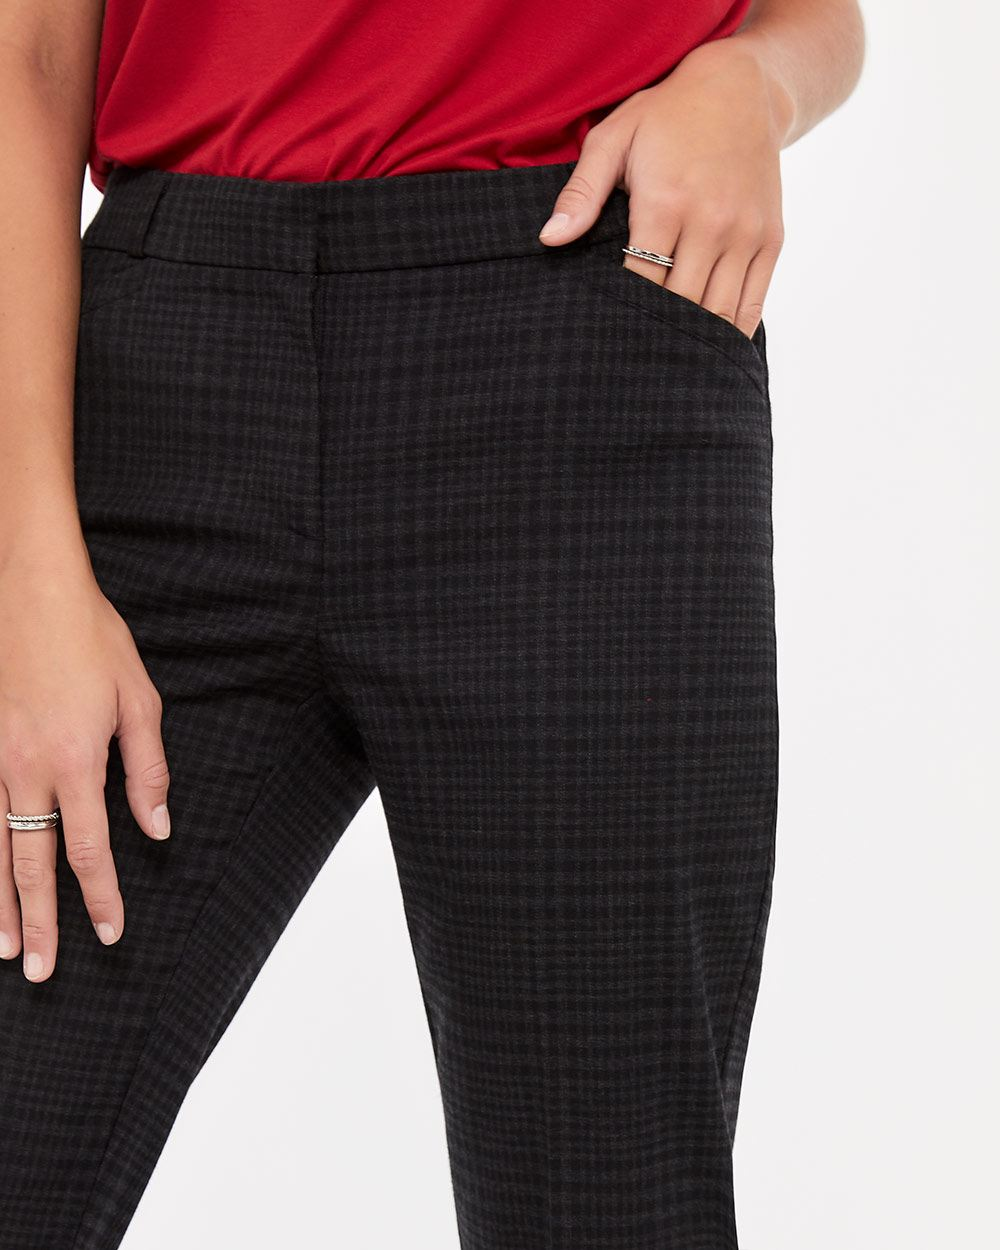 The New Classic Straight Leg Pattern Pants